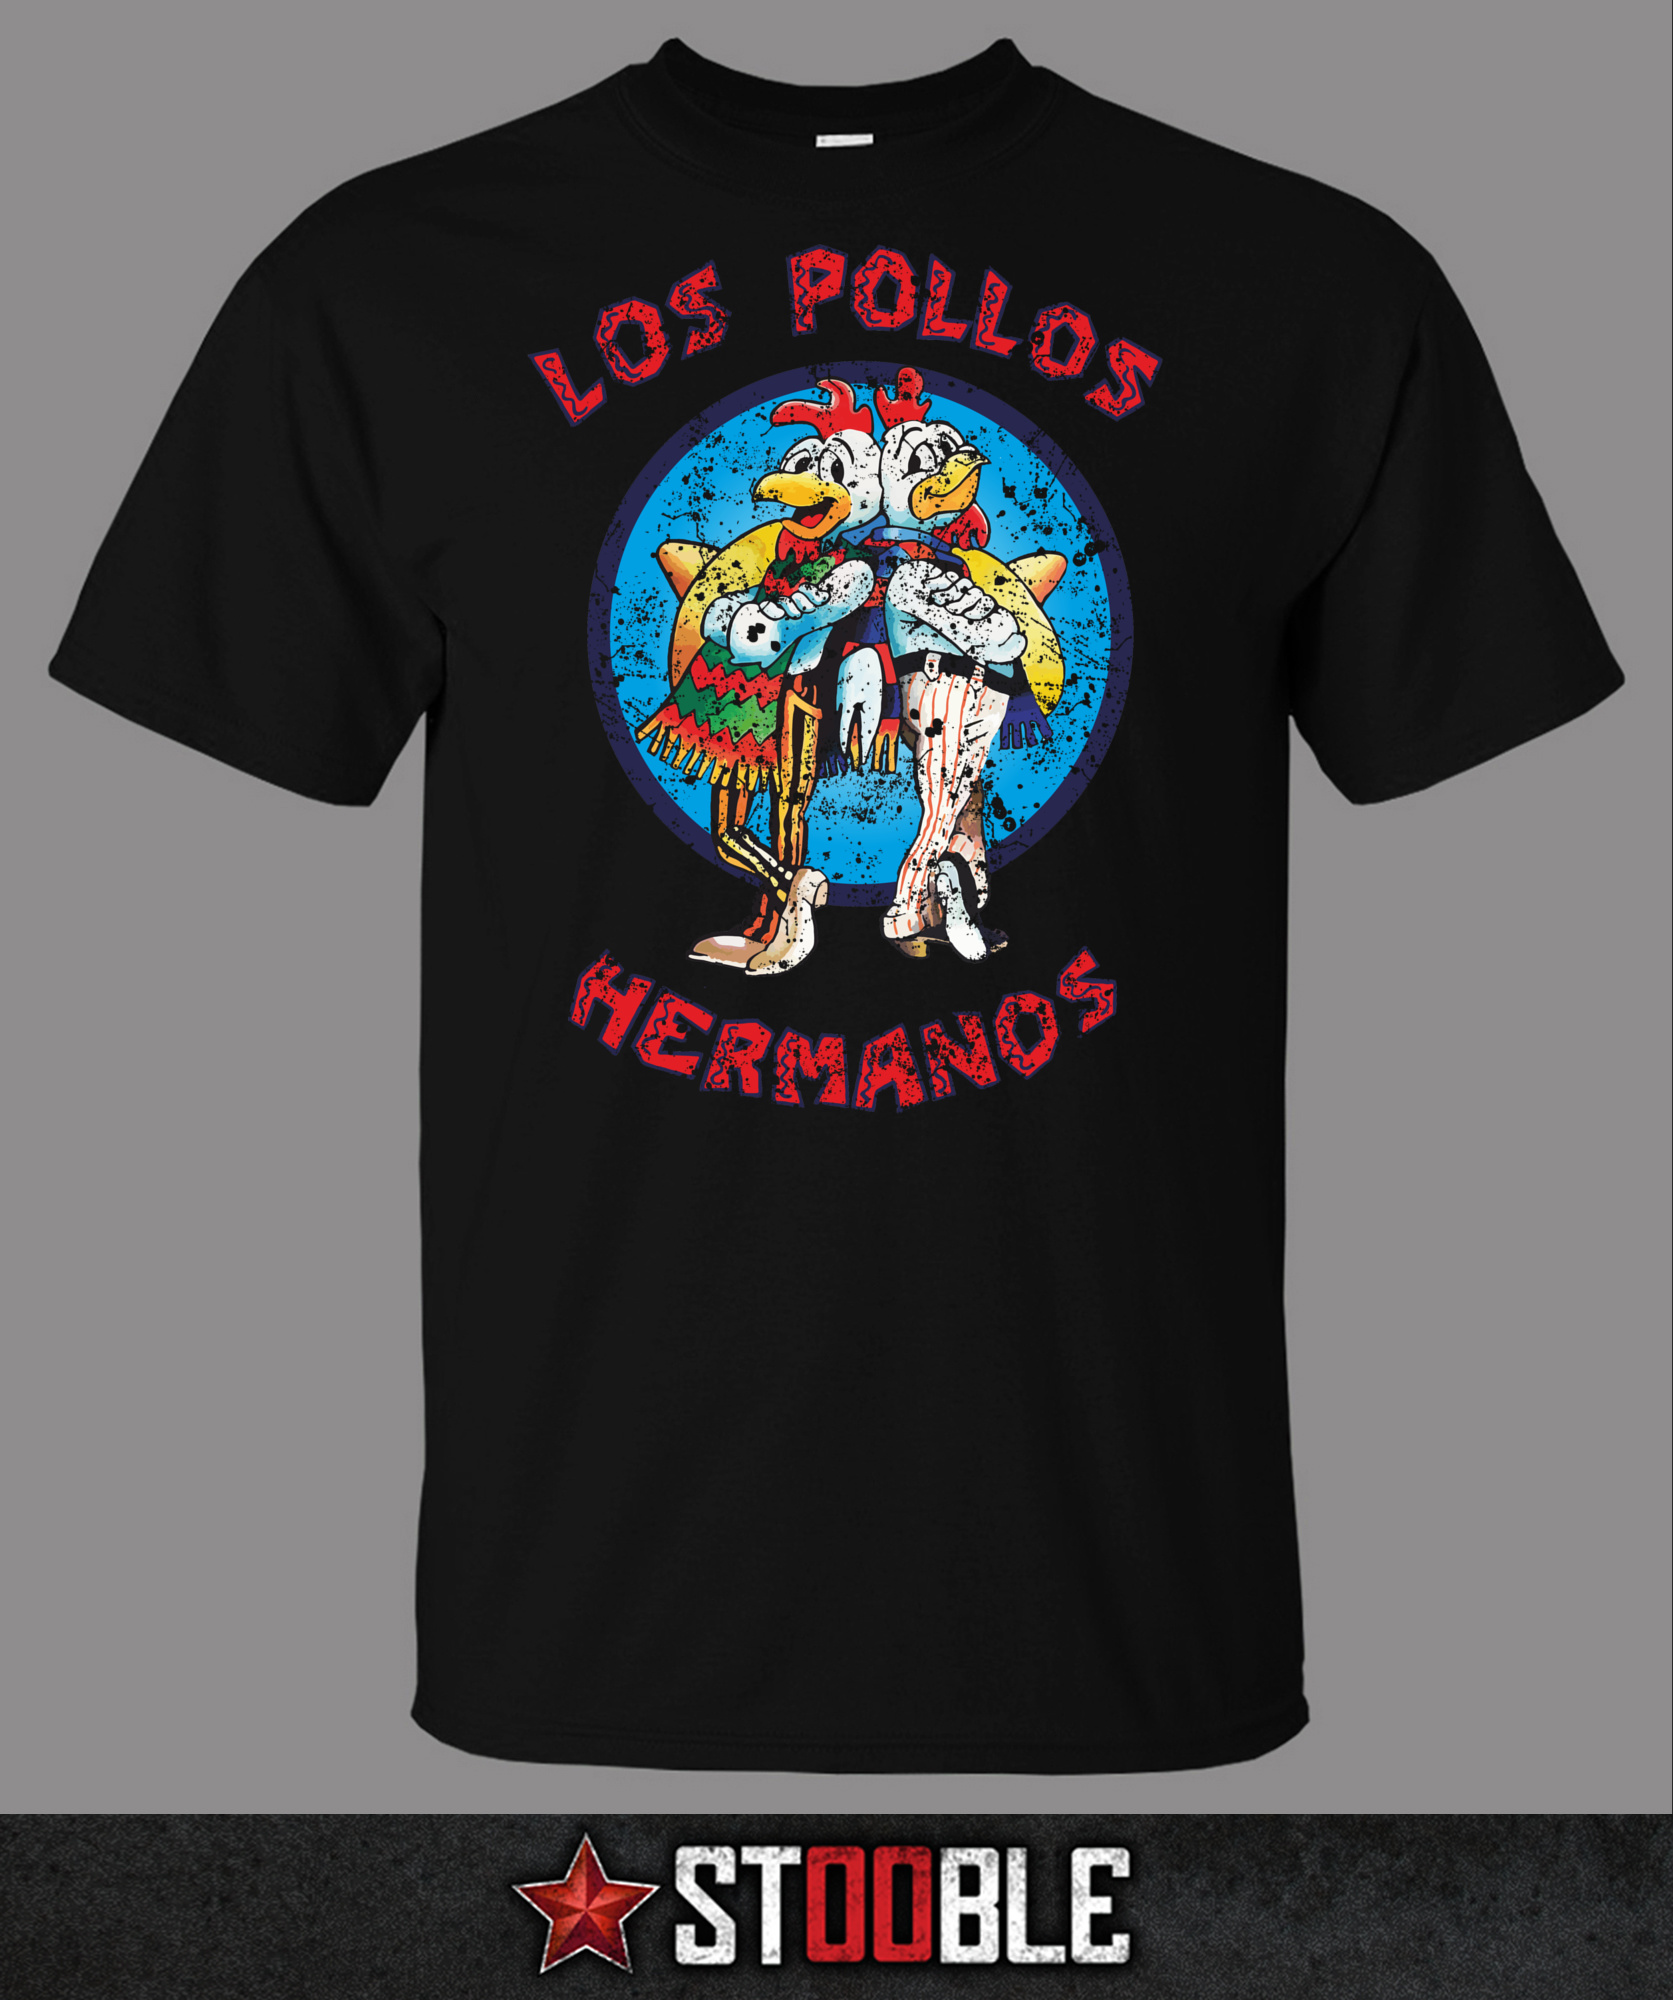 Los Pollos Hermanos T-Shirt - New - Direct from Manufacturer